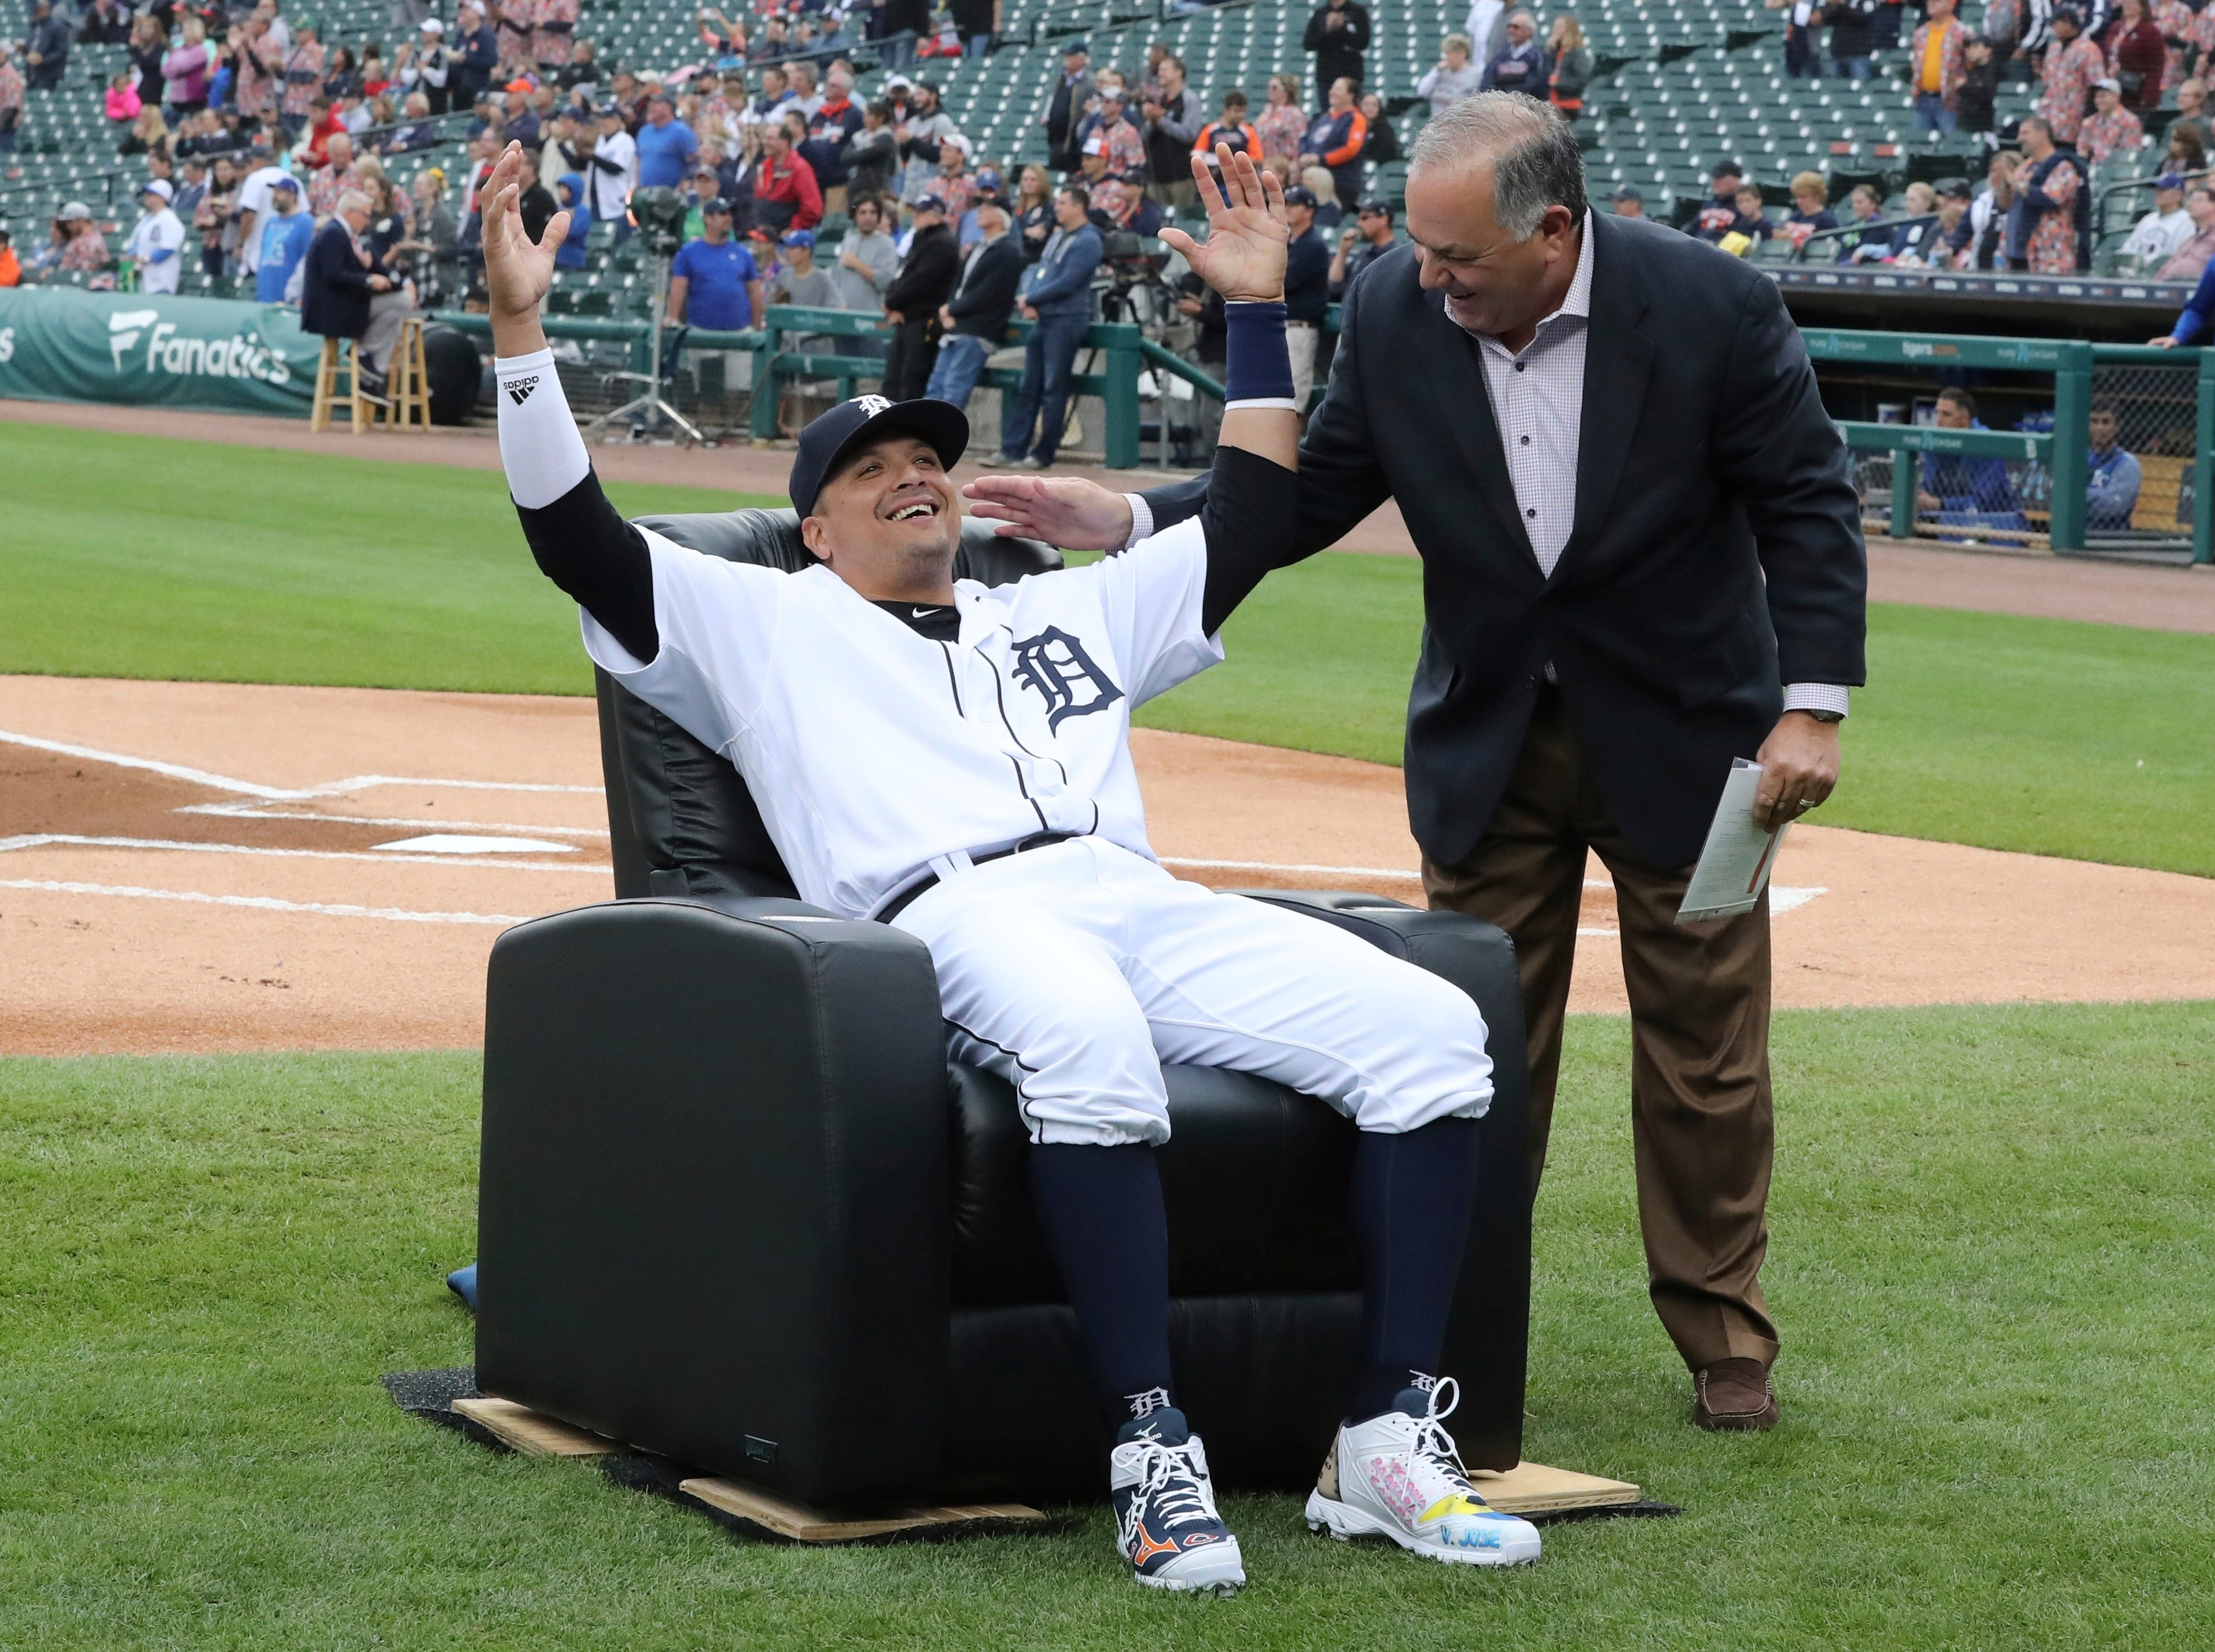 Tigers designated hitter Victor Martinez is presented a chair by general manager Al Avila before the Tigers' game against the Kansas City Royals on Saturday, Sept. 22, 2018, at Comerica Park. Martinez is playing his final game, and said he wants his final at-bats to be in front of the home fans.